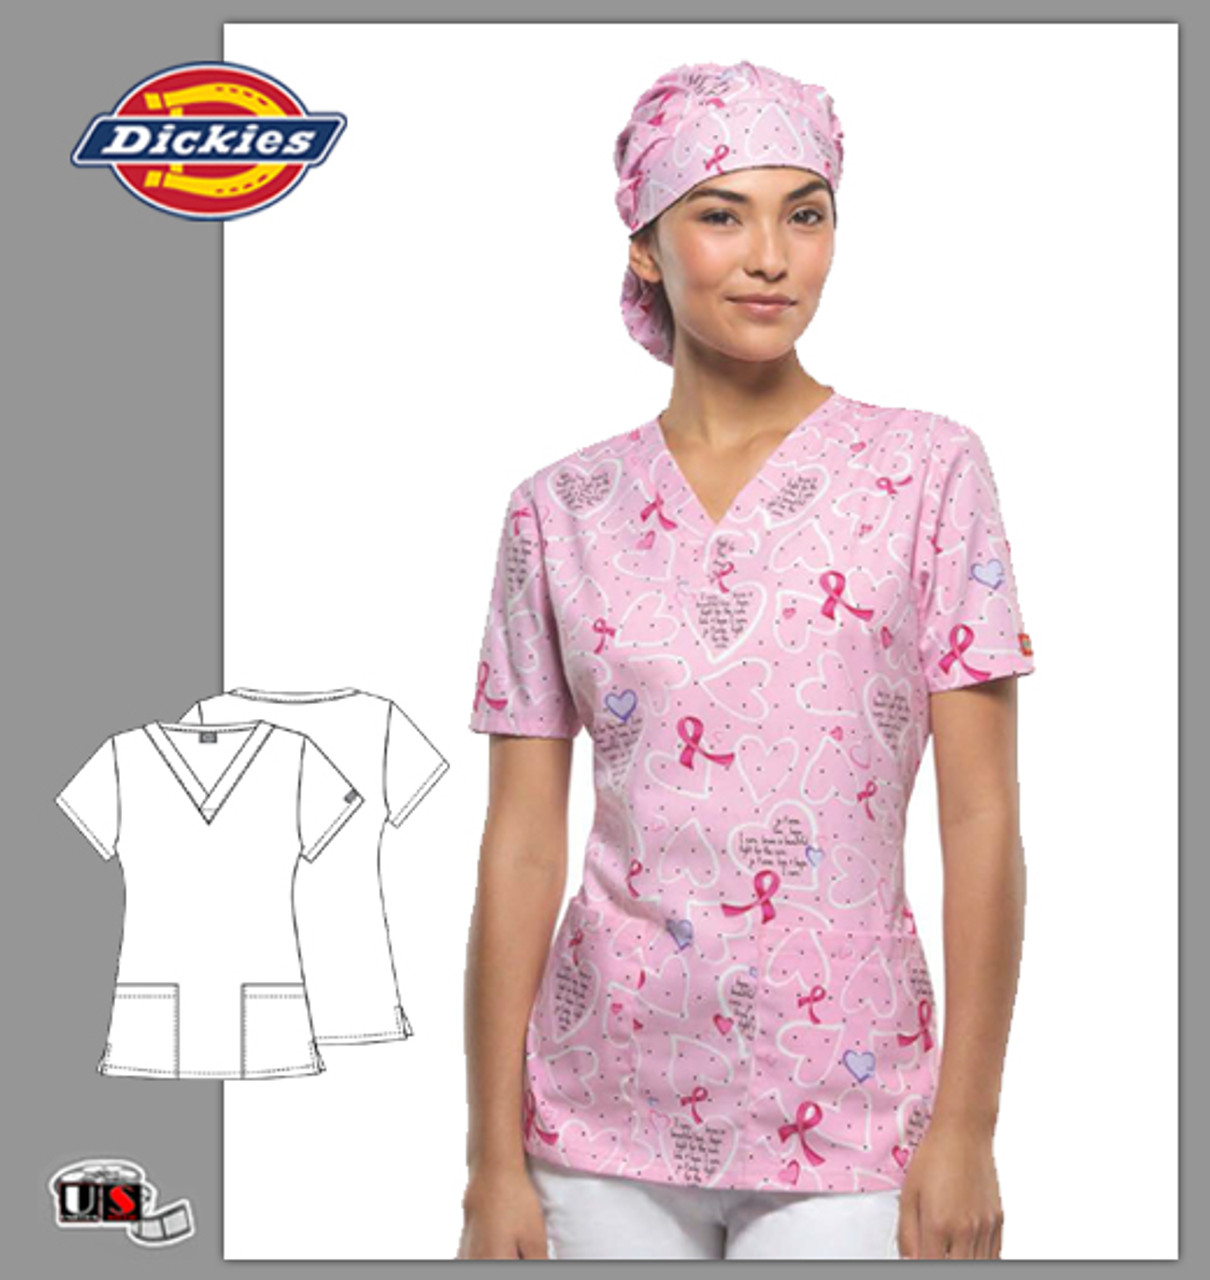 94120a83546 Dickies BCA Brave is Beautiful Printed V-Neck Top - Dental Supplies,Inc